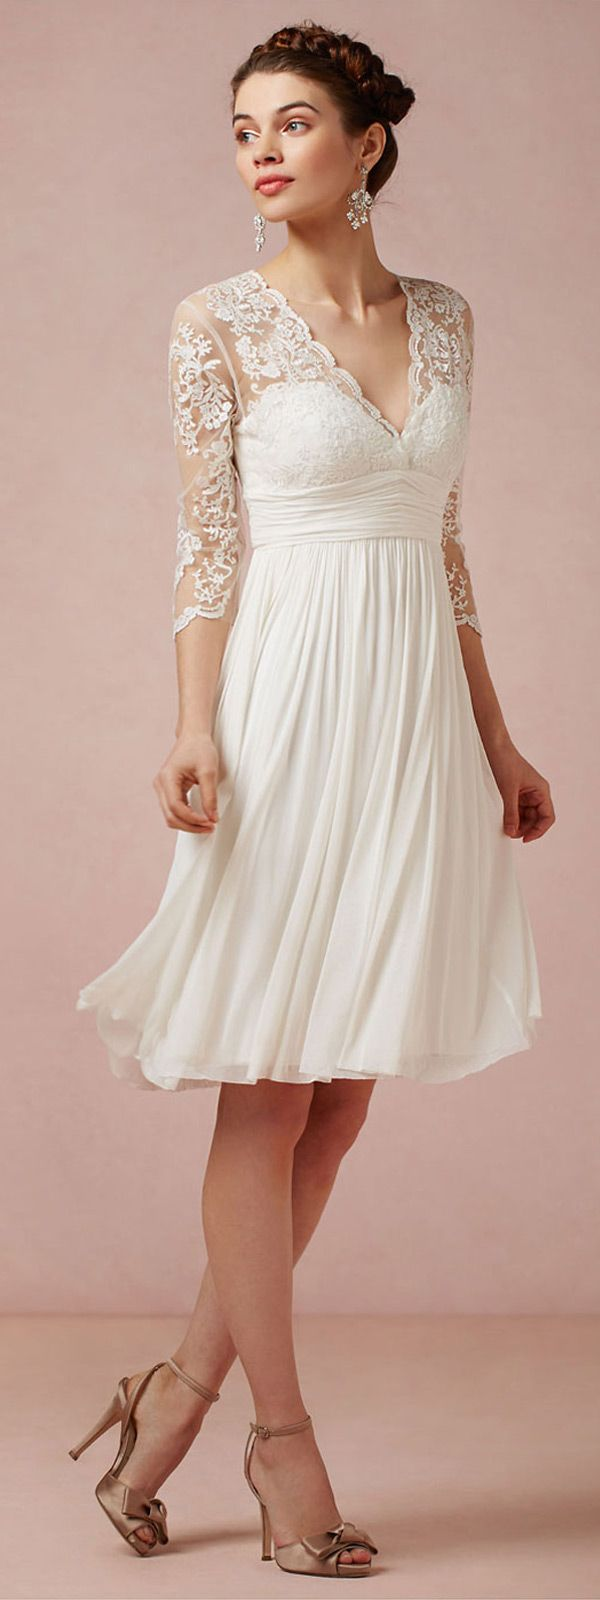 Amazing Tulle & Chiffon & Stretch Charmeuse Satin A-line V-neck Empire Waist Short Wedding Dress